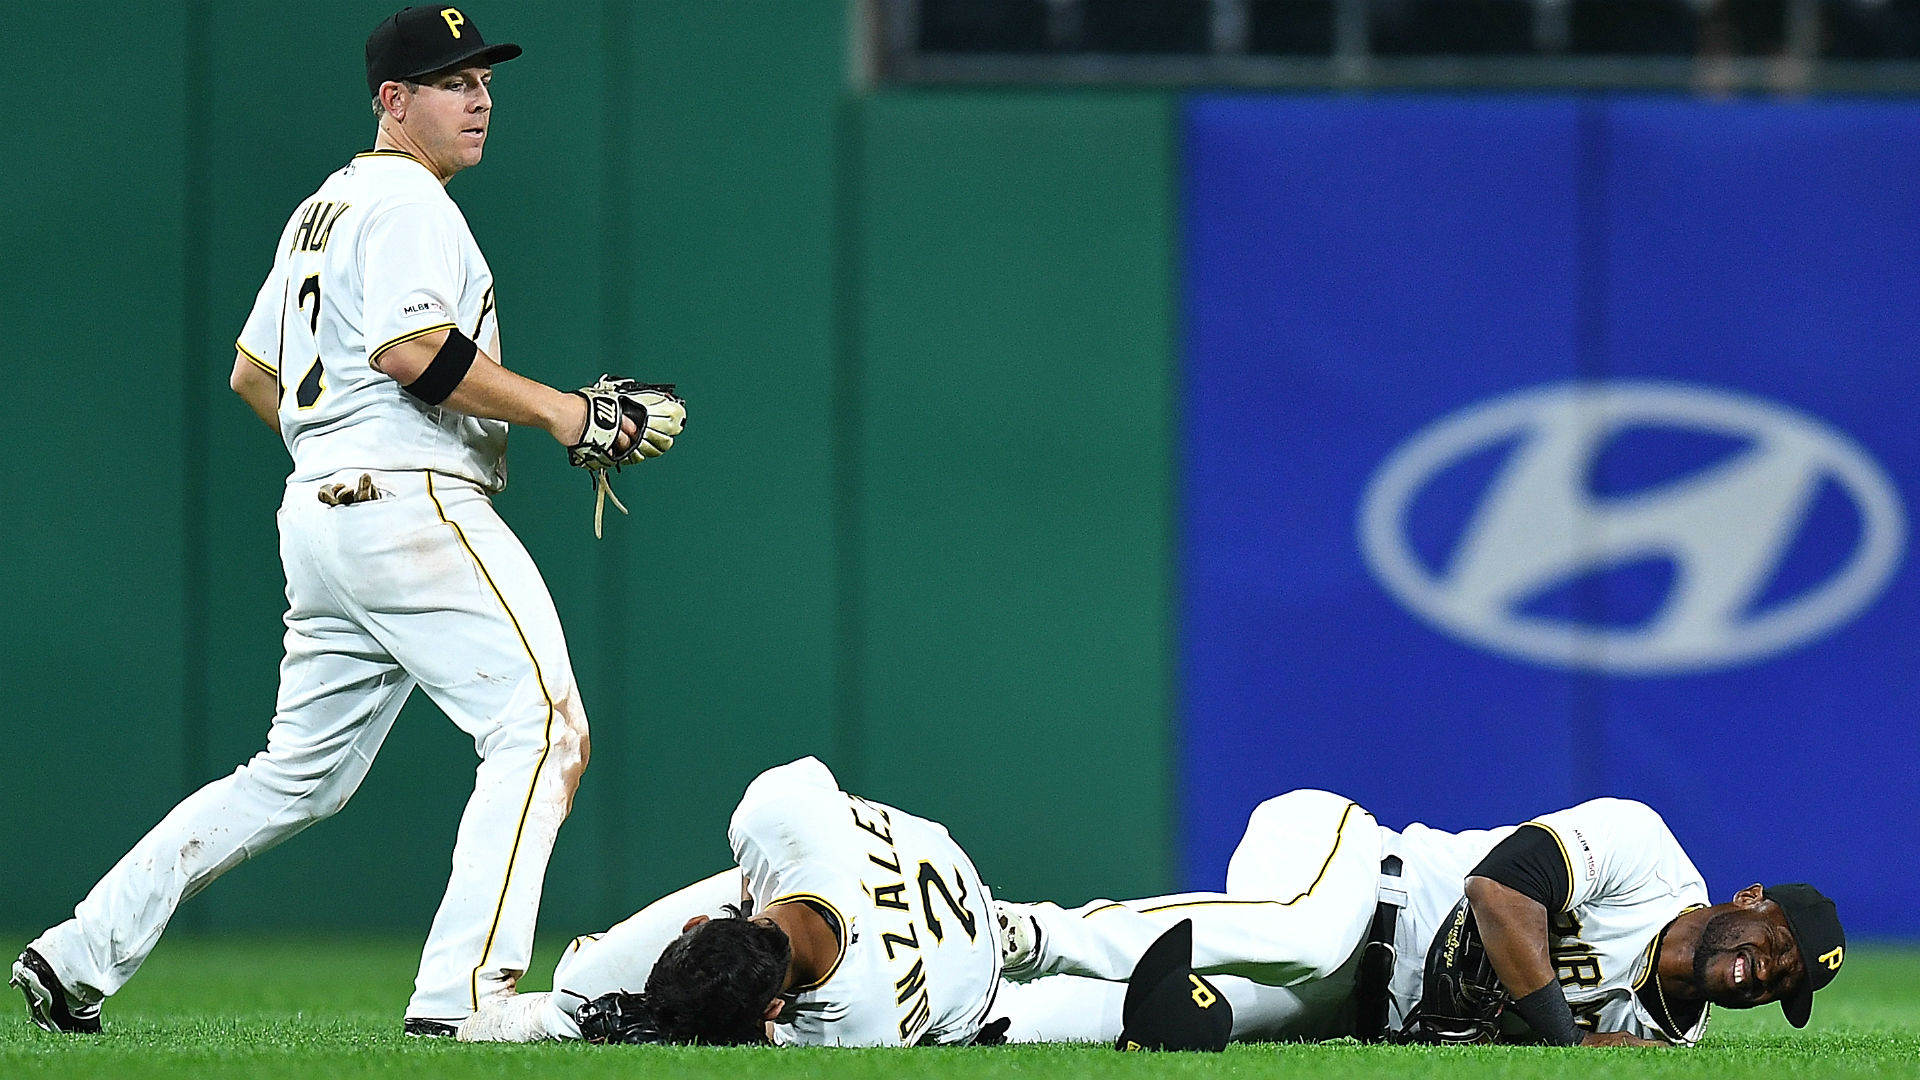 Pirates lose Marte, Gonzalez to IL